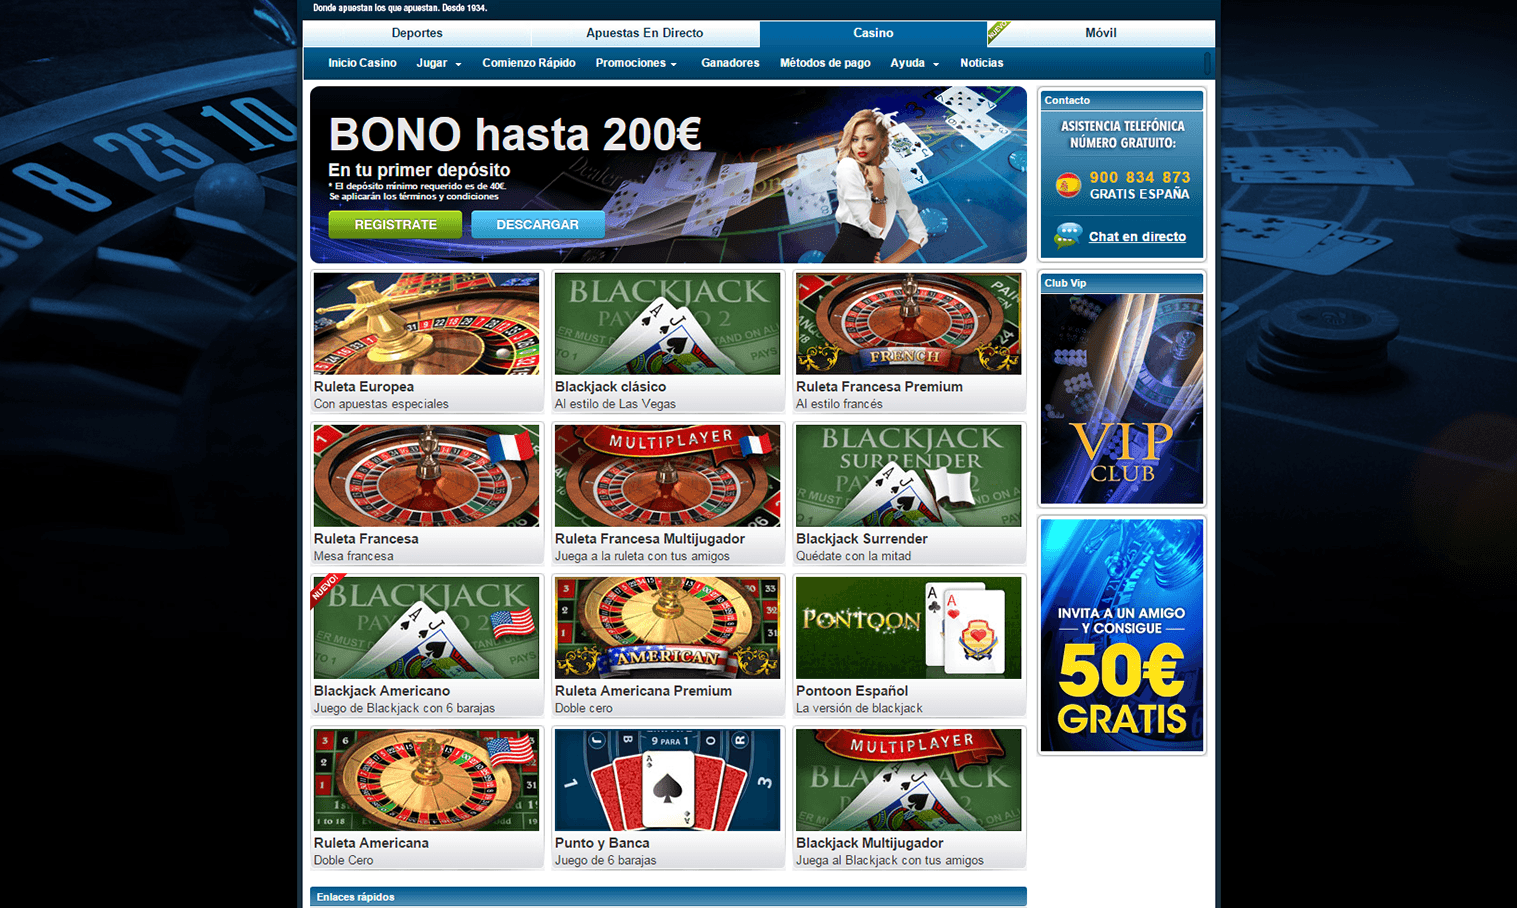 William hill app casino online legales en Coimbra - 50100